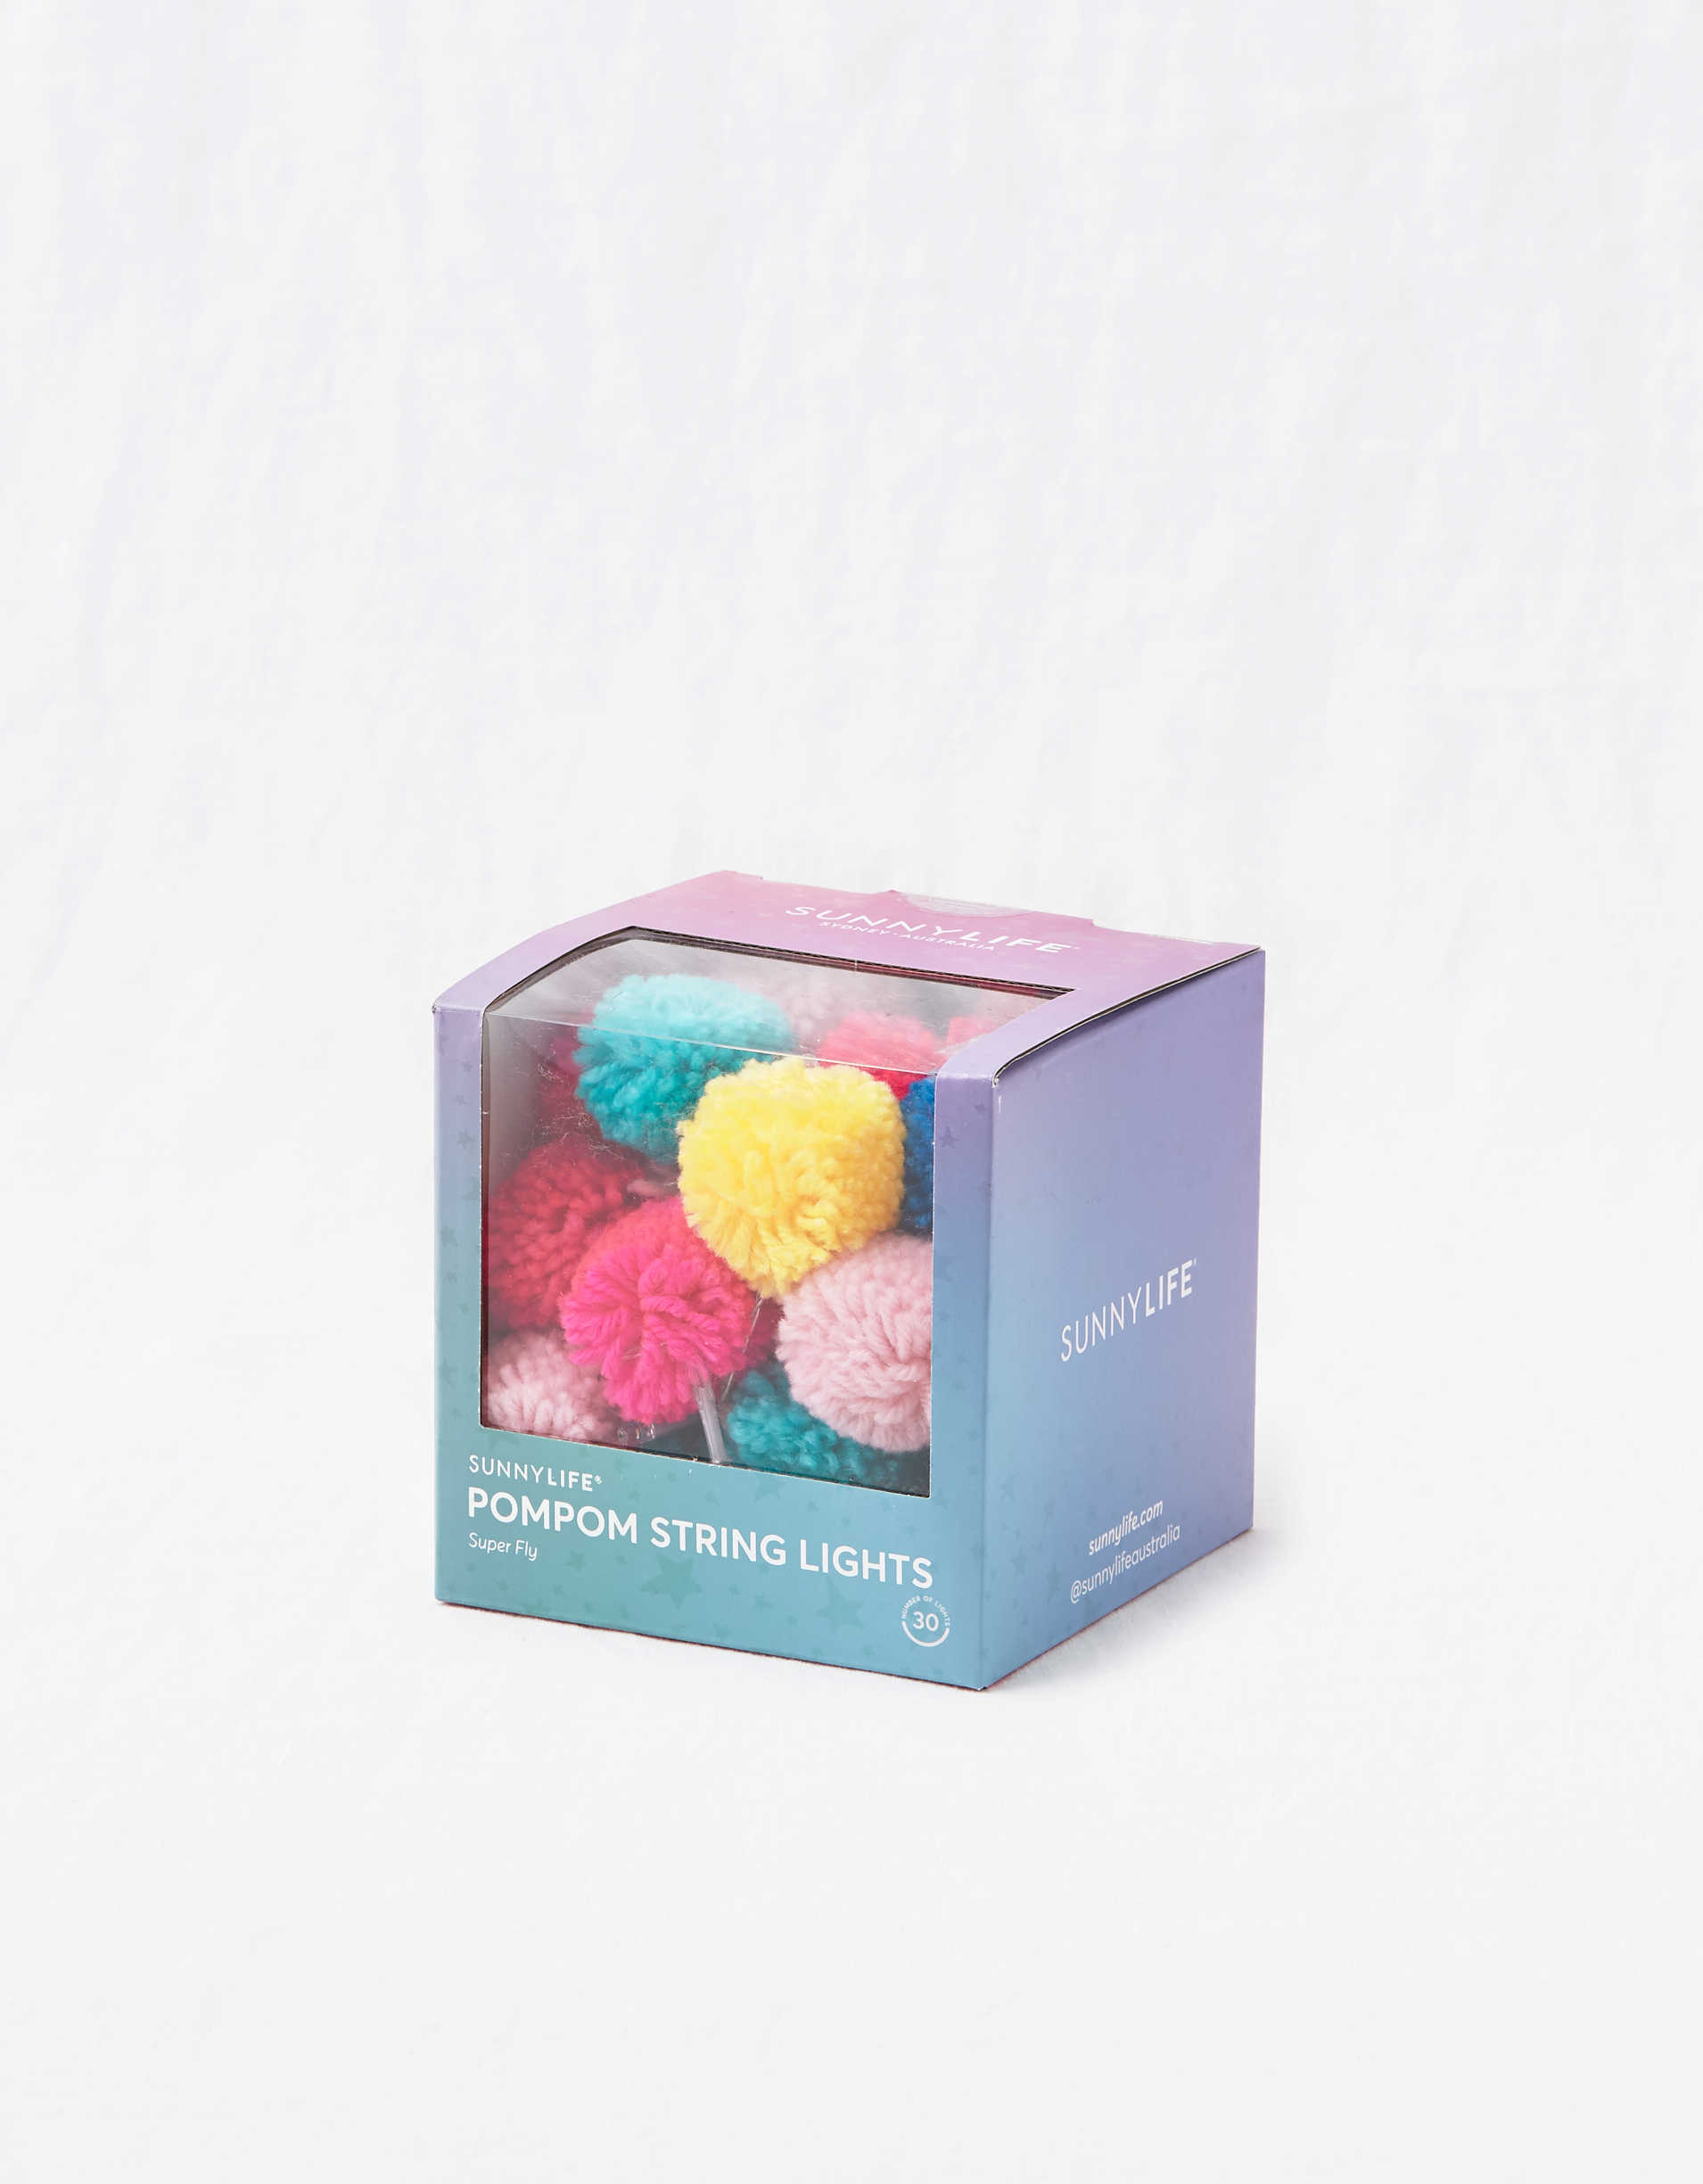 Sunnylife Pom Pom String Lights